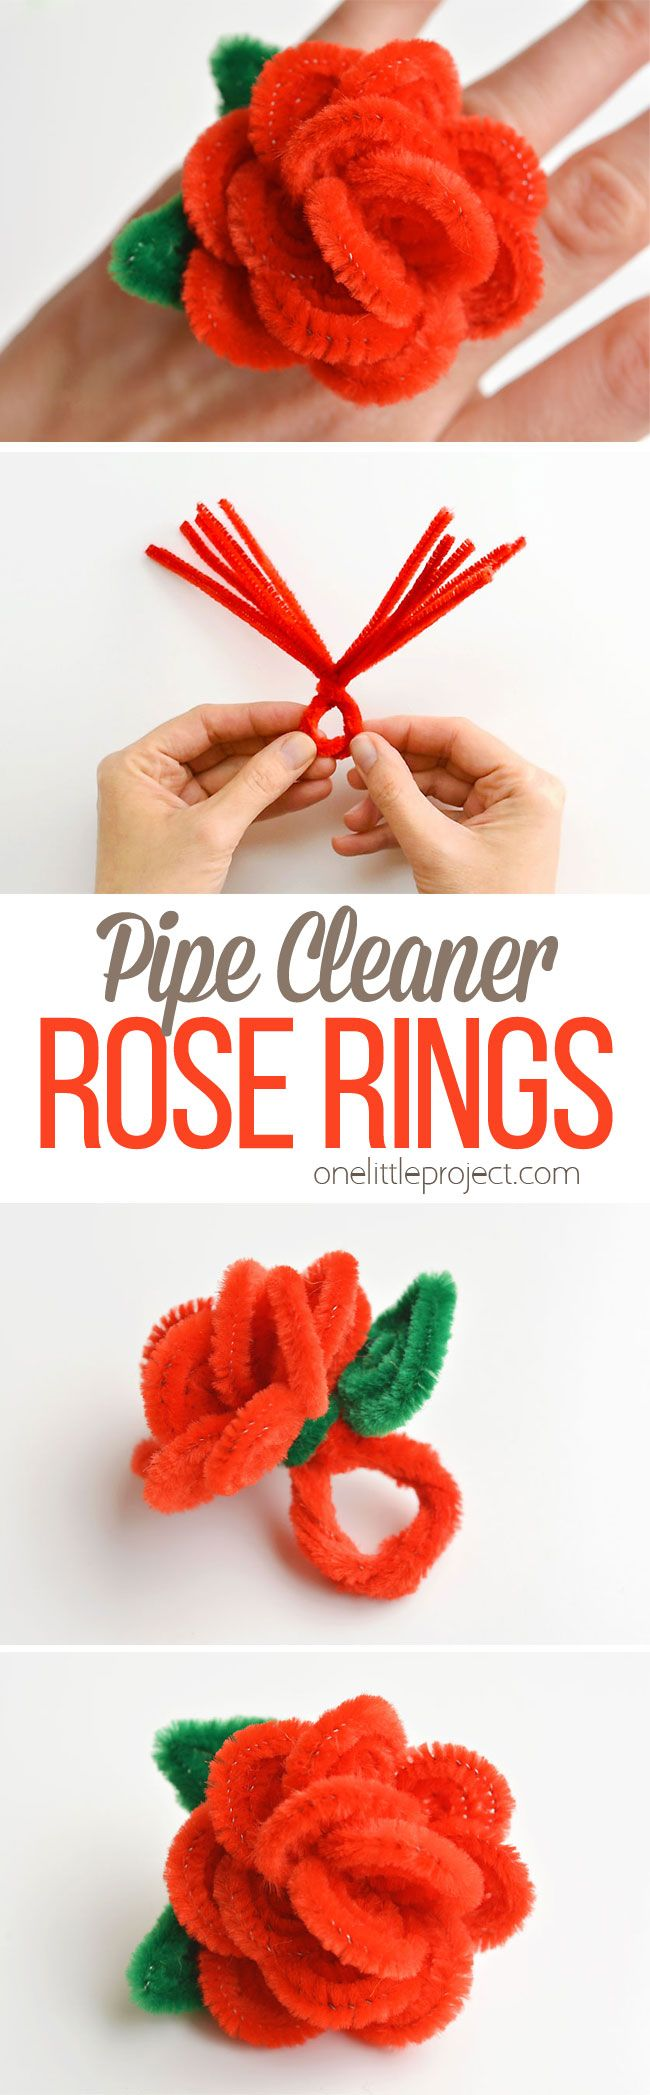 How to Make Pipe Cleaner Rose Rings